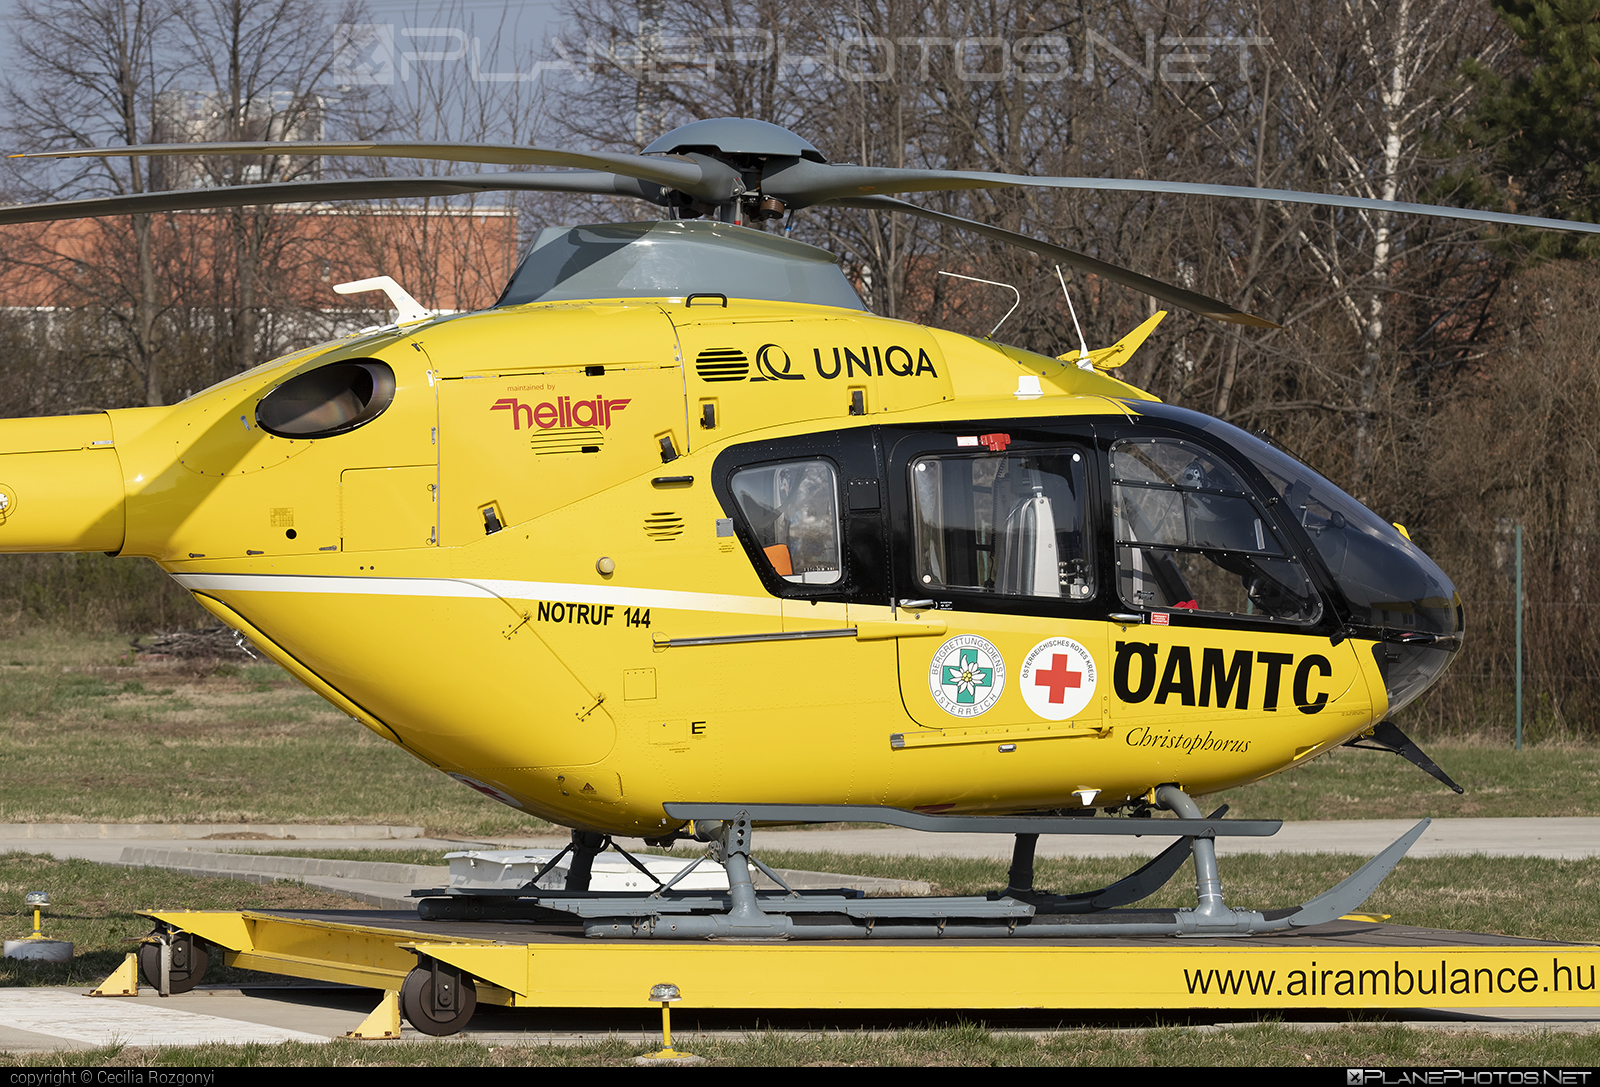 Helikopter Air Transport GmbH Eurocopter EC135 T2 - OE-XEJ #ec135 #ec135t2 #eurocopter #heliair #helikopterairtransport #helikopterairtransportgmbh